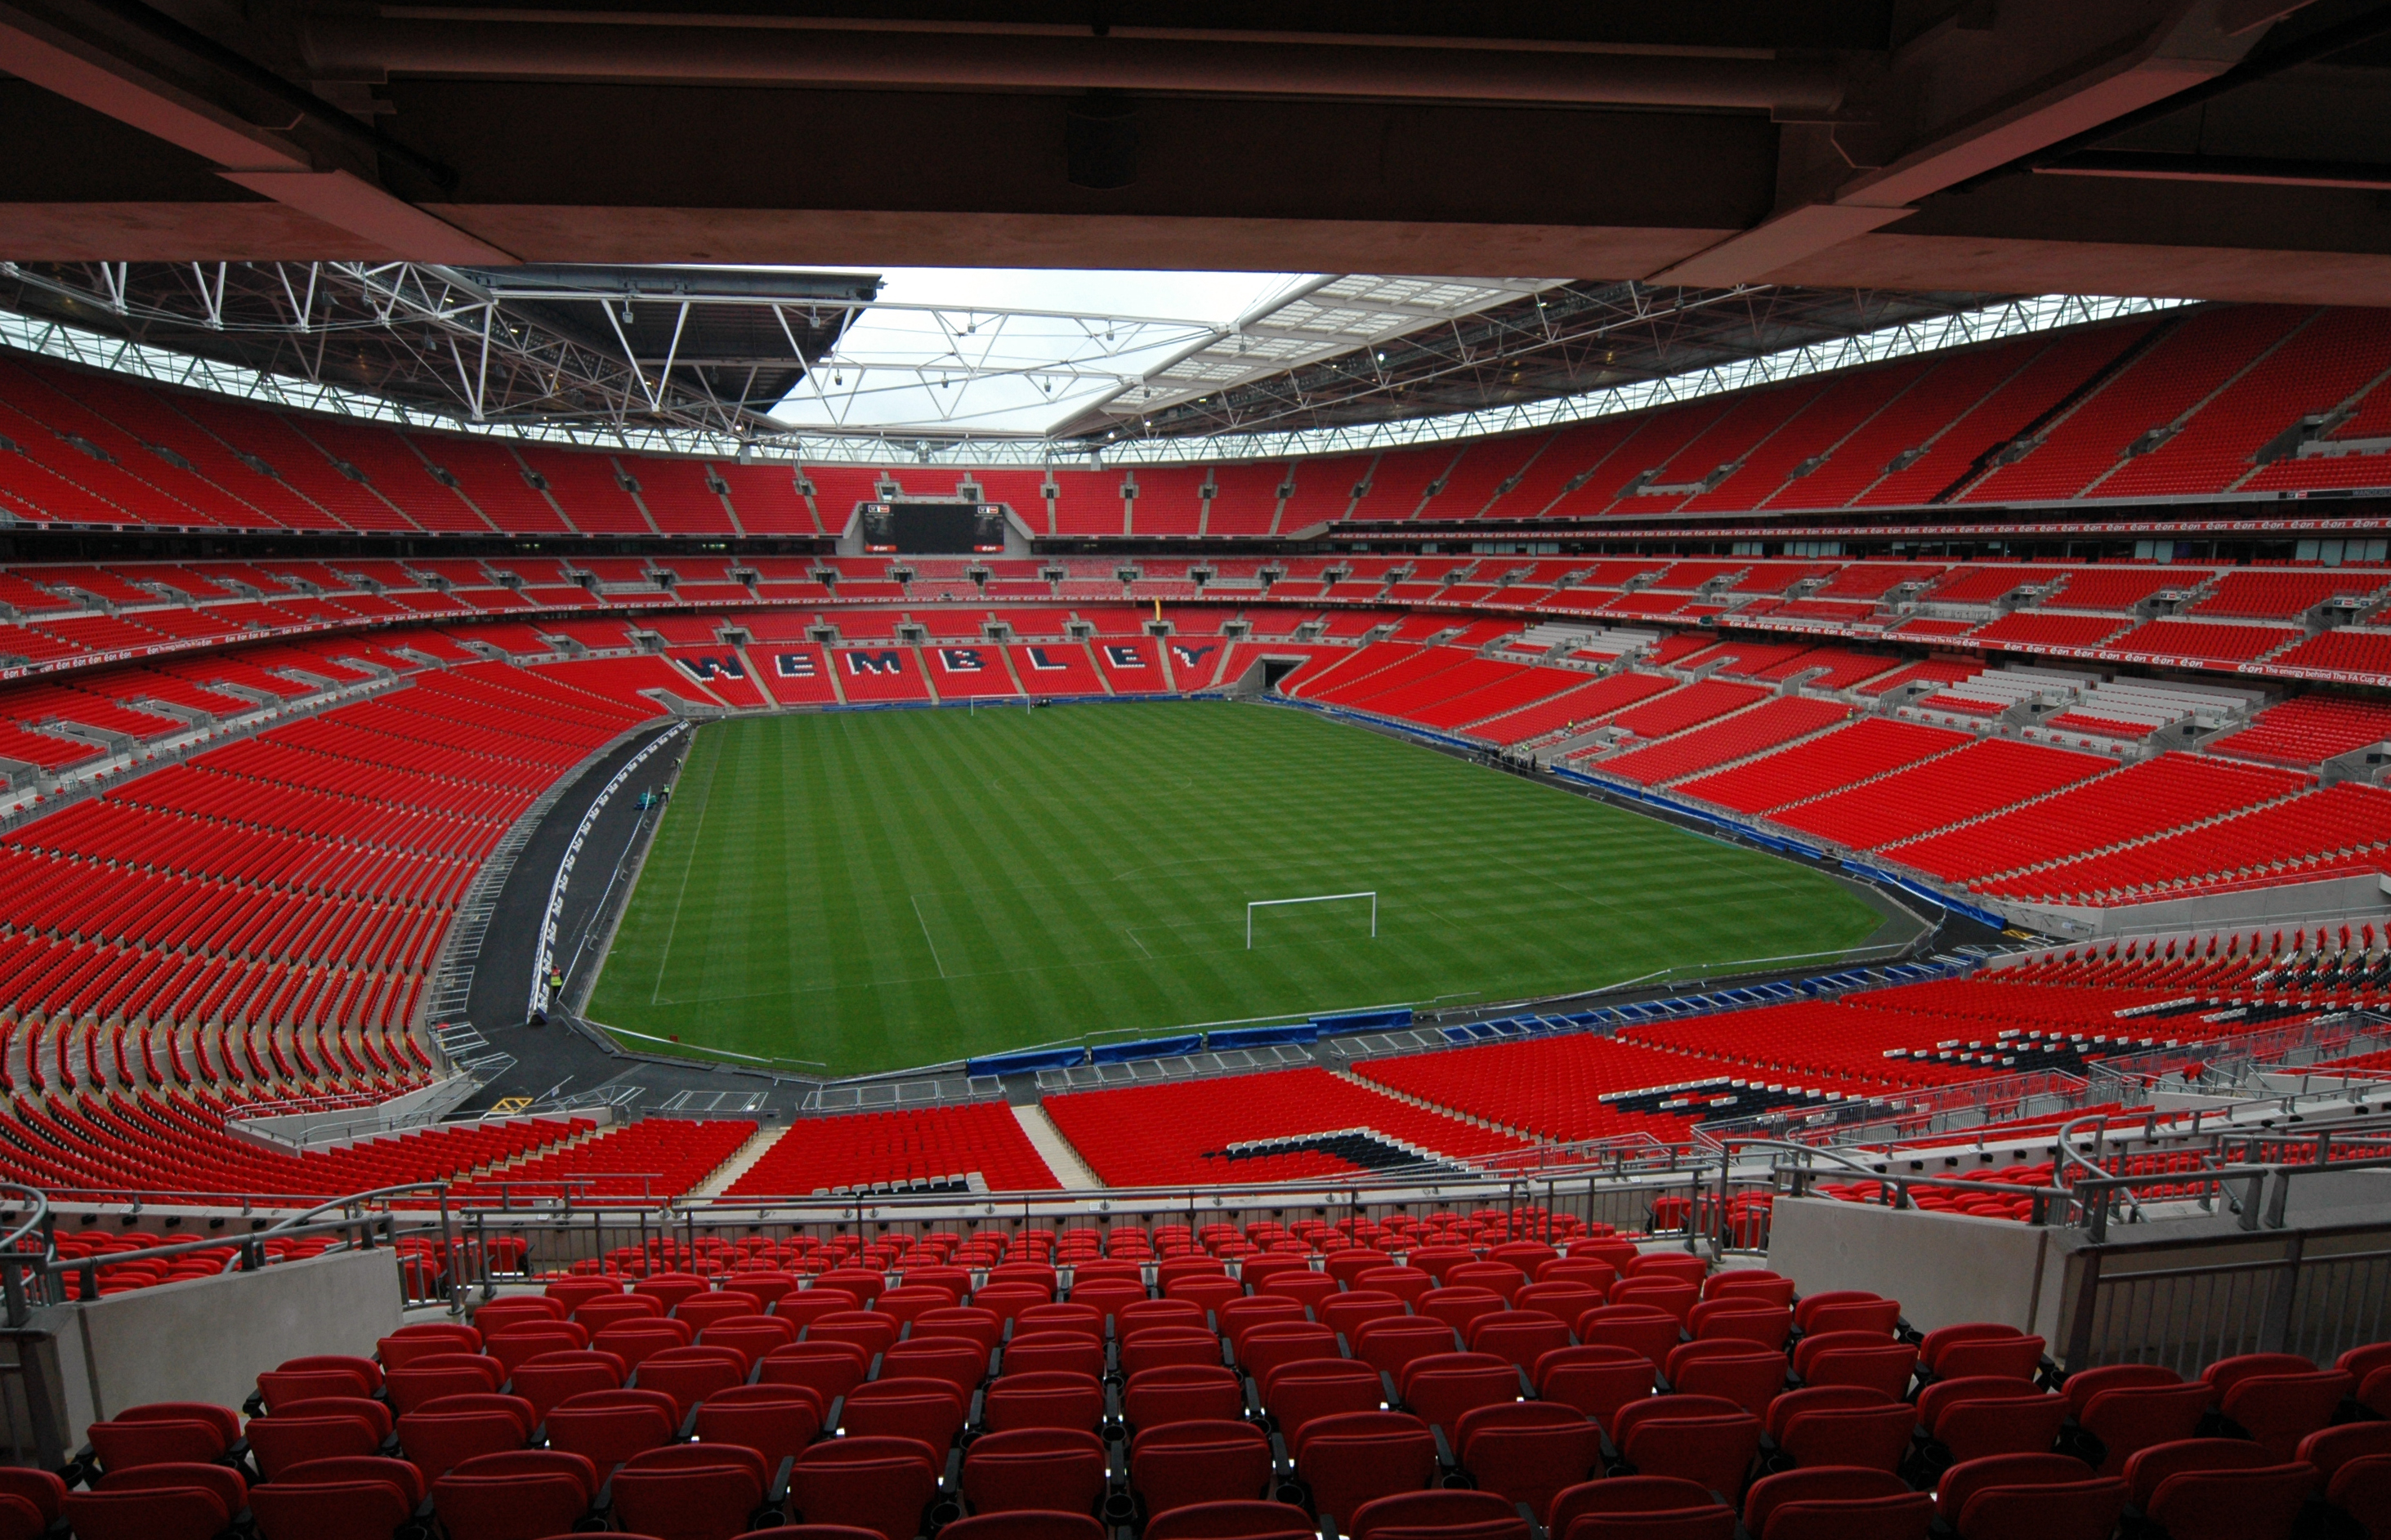 Wembley_Stadium_interior.jpg